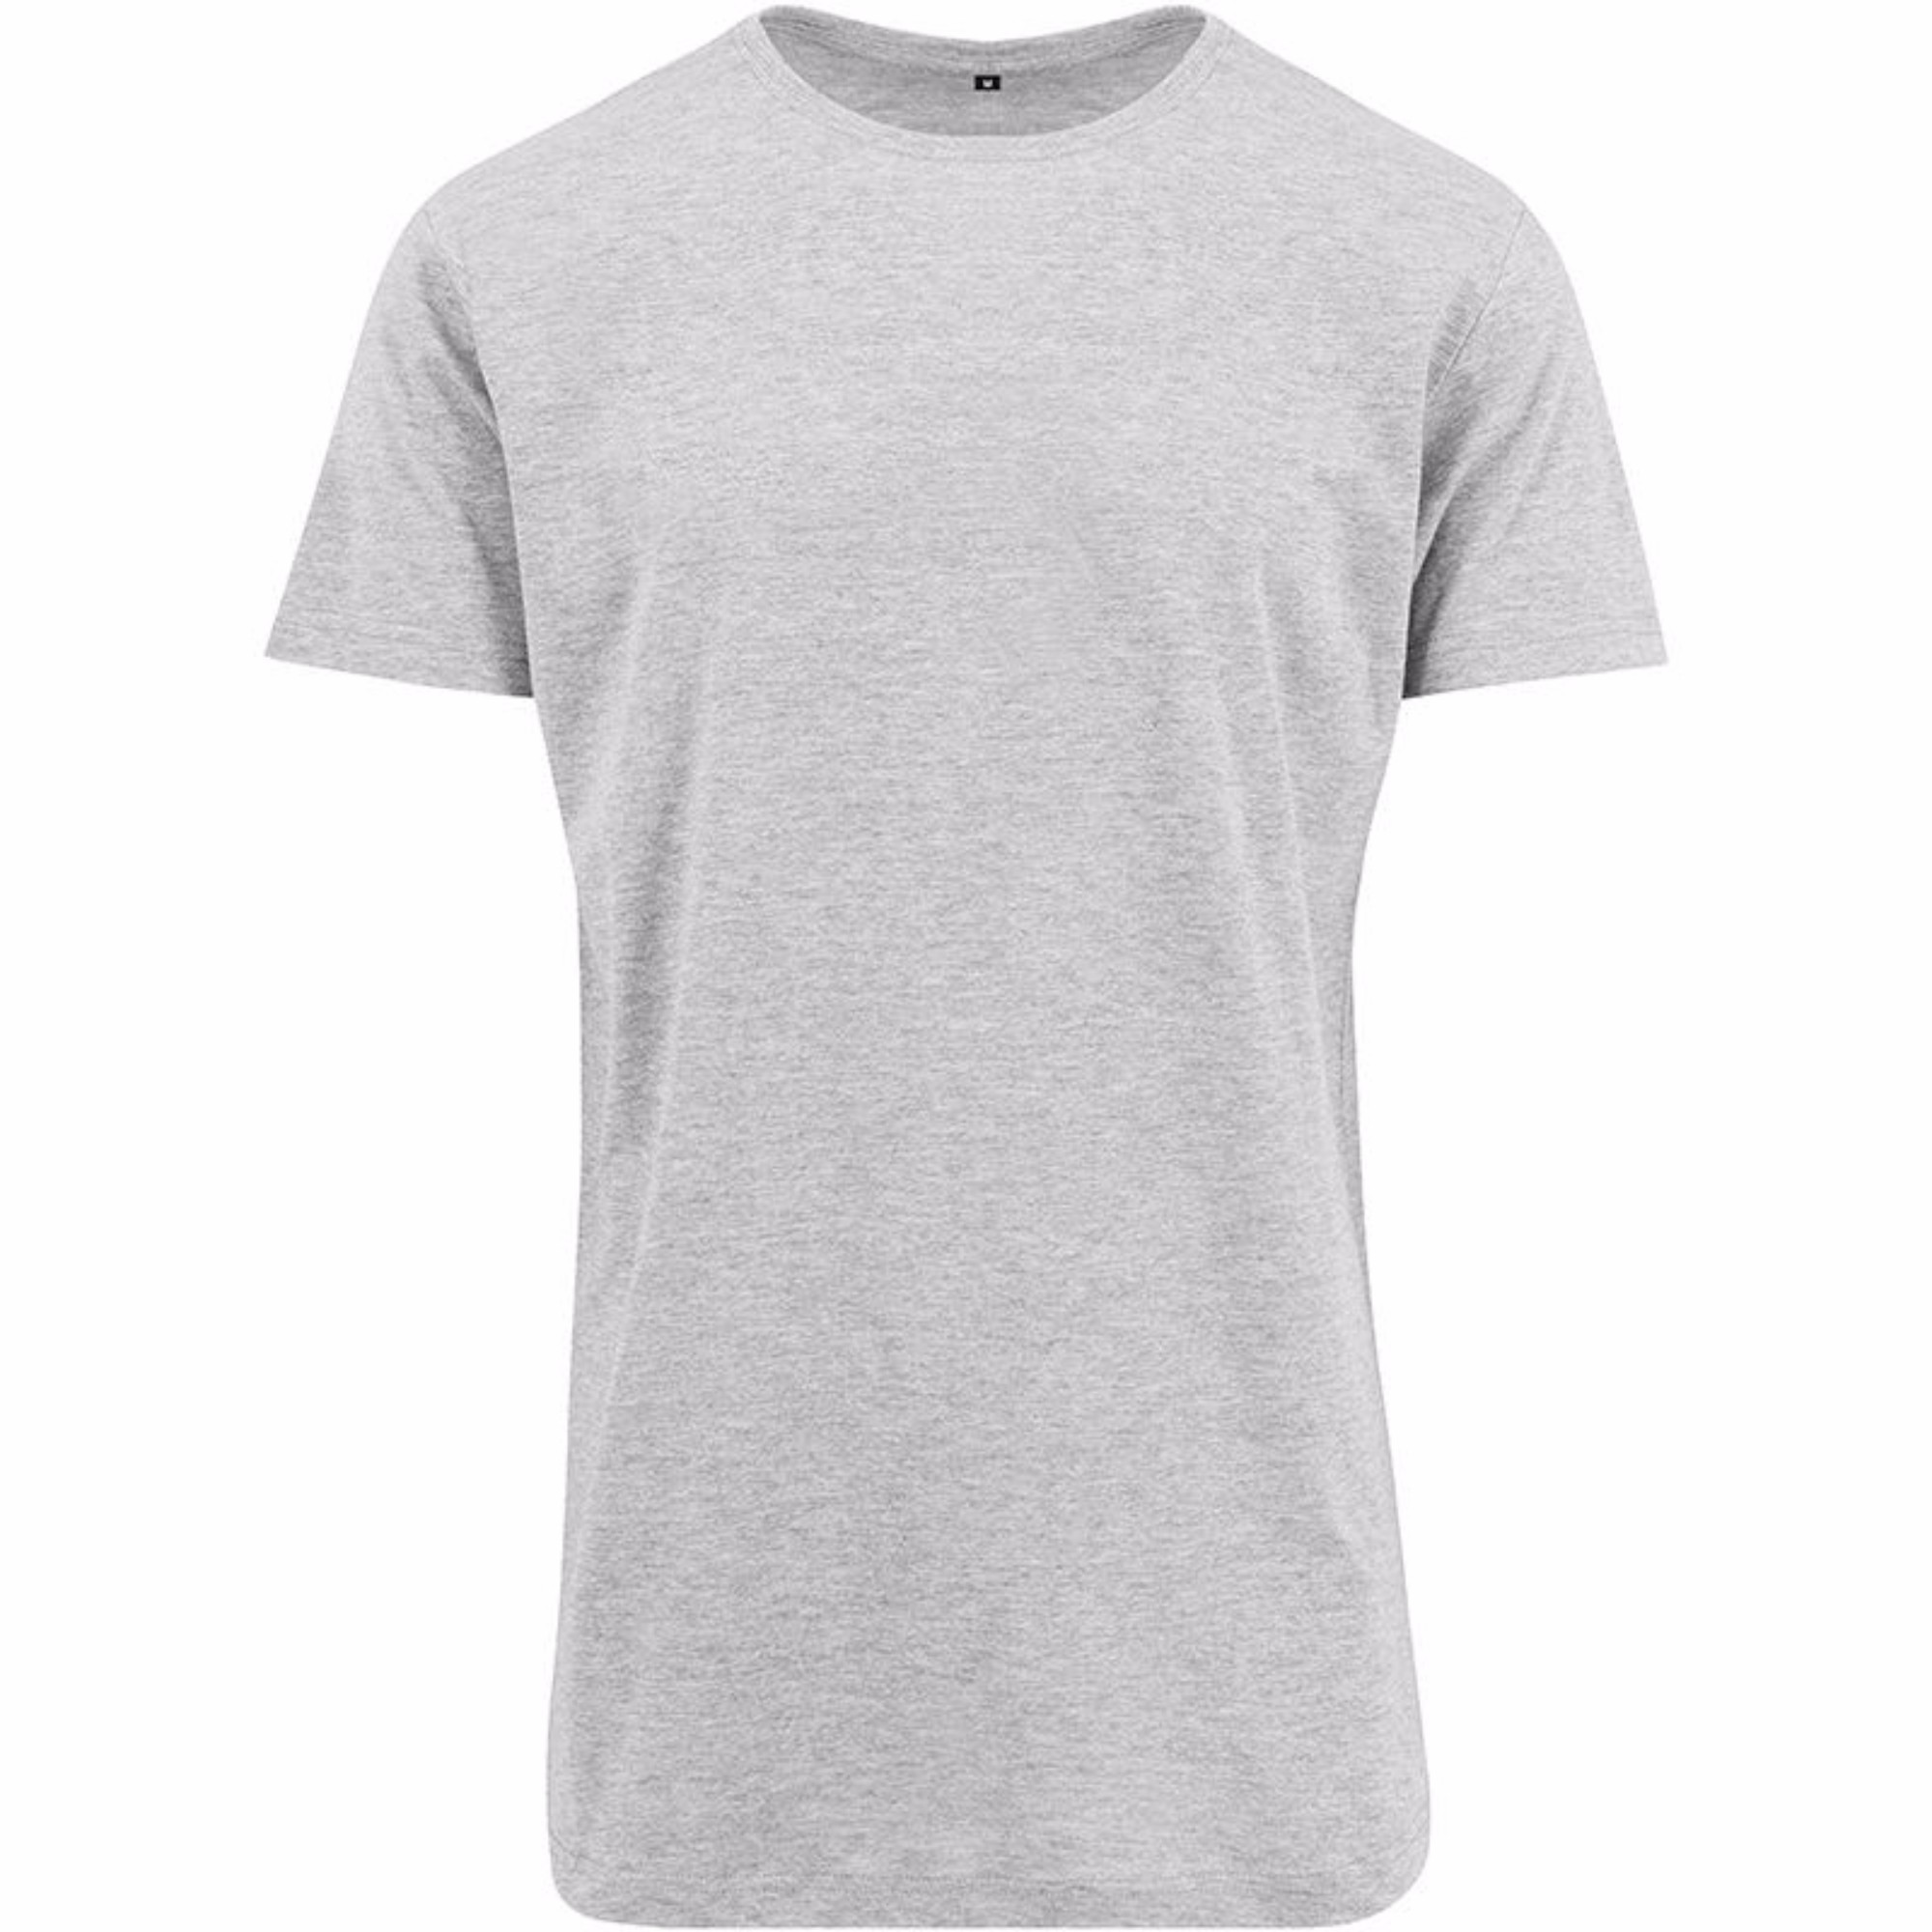 Build Your Brand Mens Shaped Long Short Sleeve T-Shirt (XS) (Heather Grey)